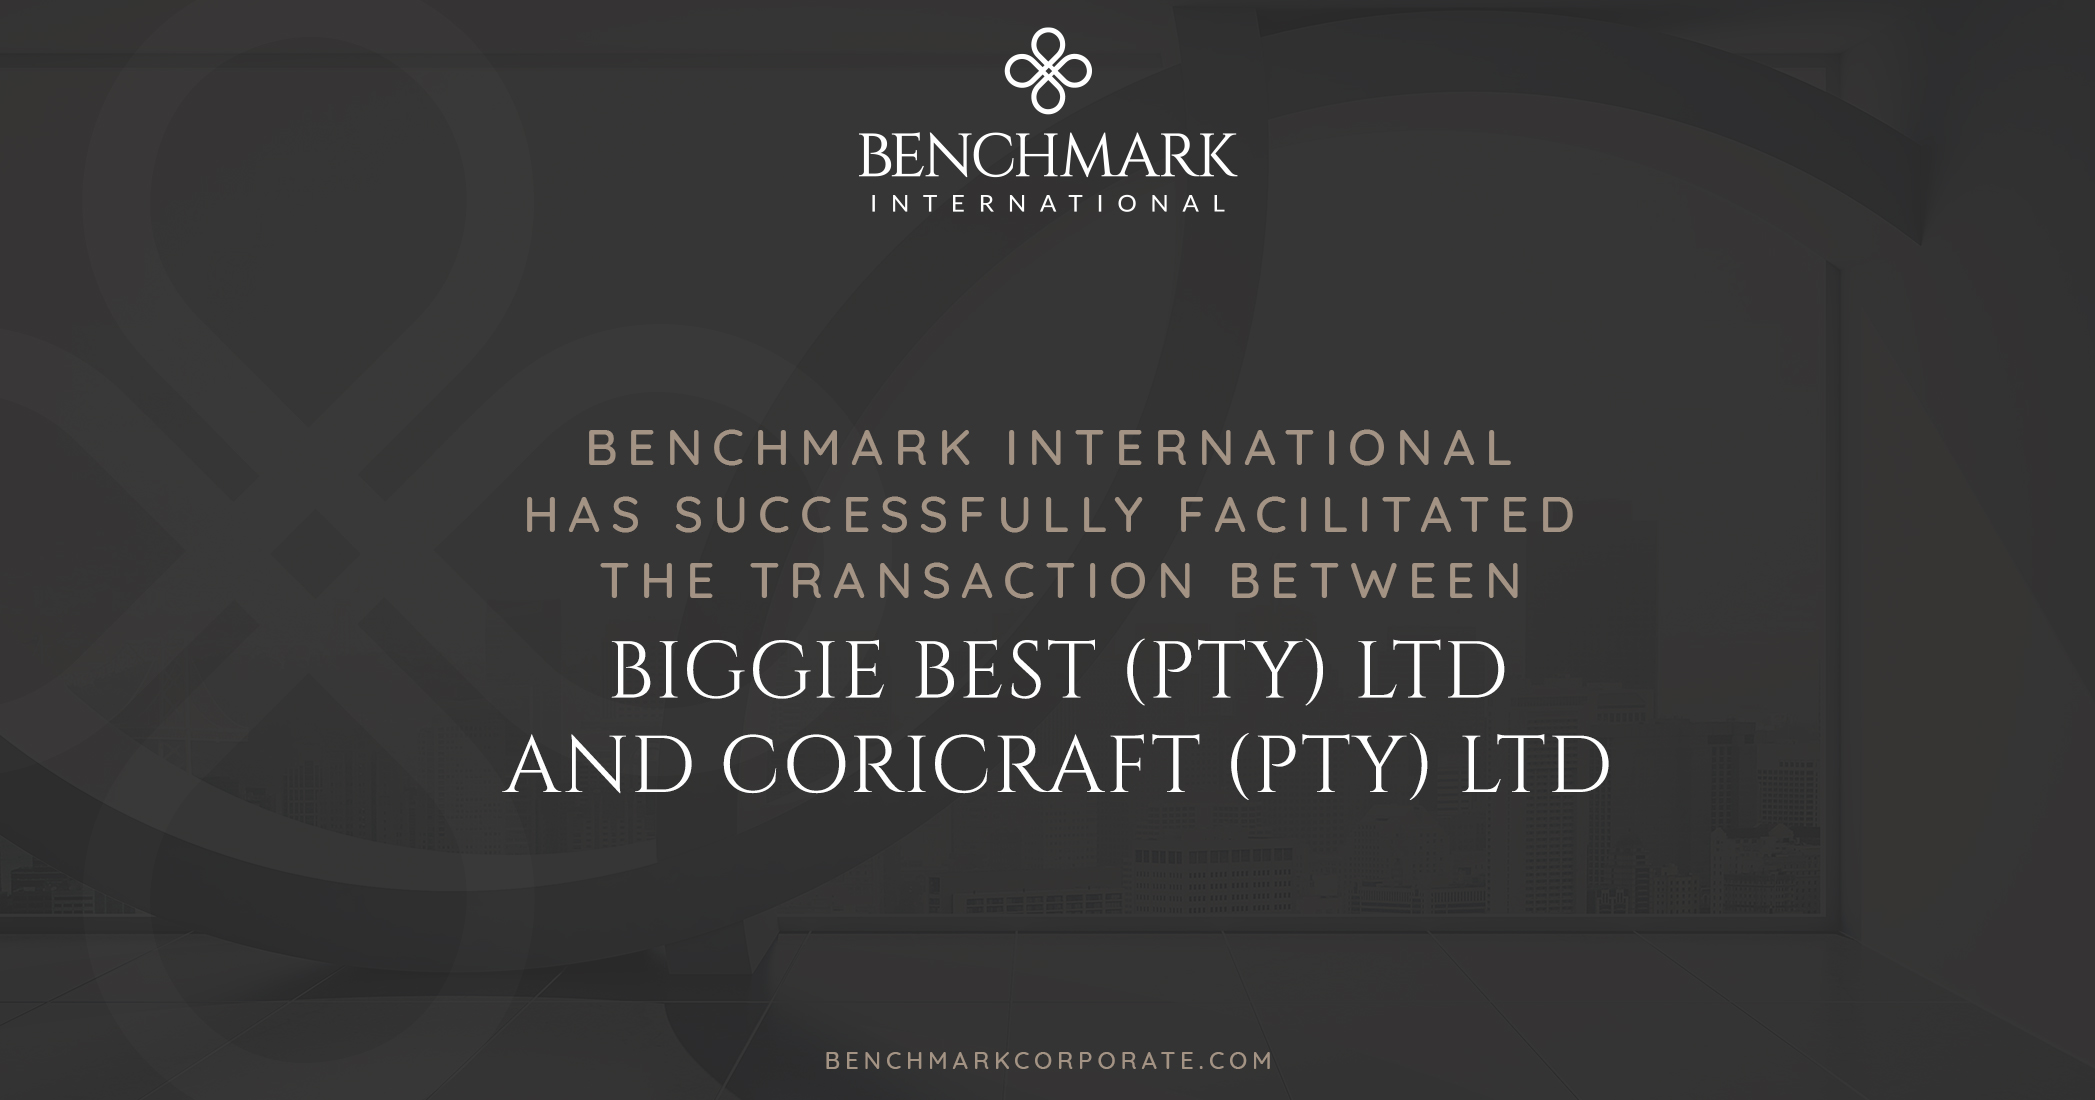 Benchmark International has Successfully Facilitated the Acquisition of Biggie Best (PTY) LTD to Coricraft (PTY) LTD